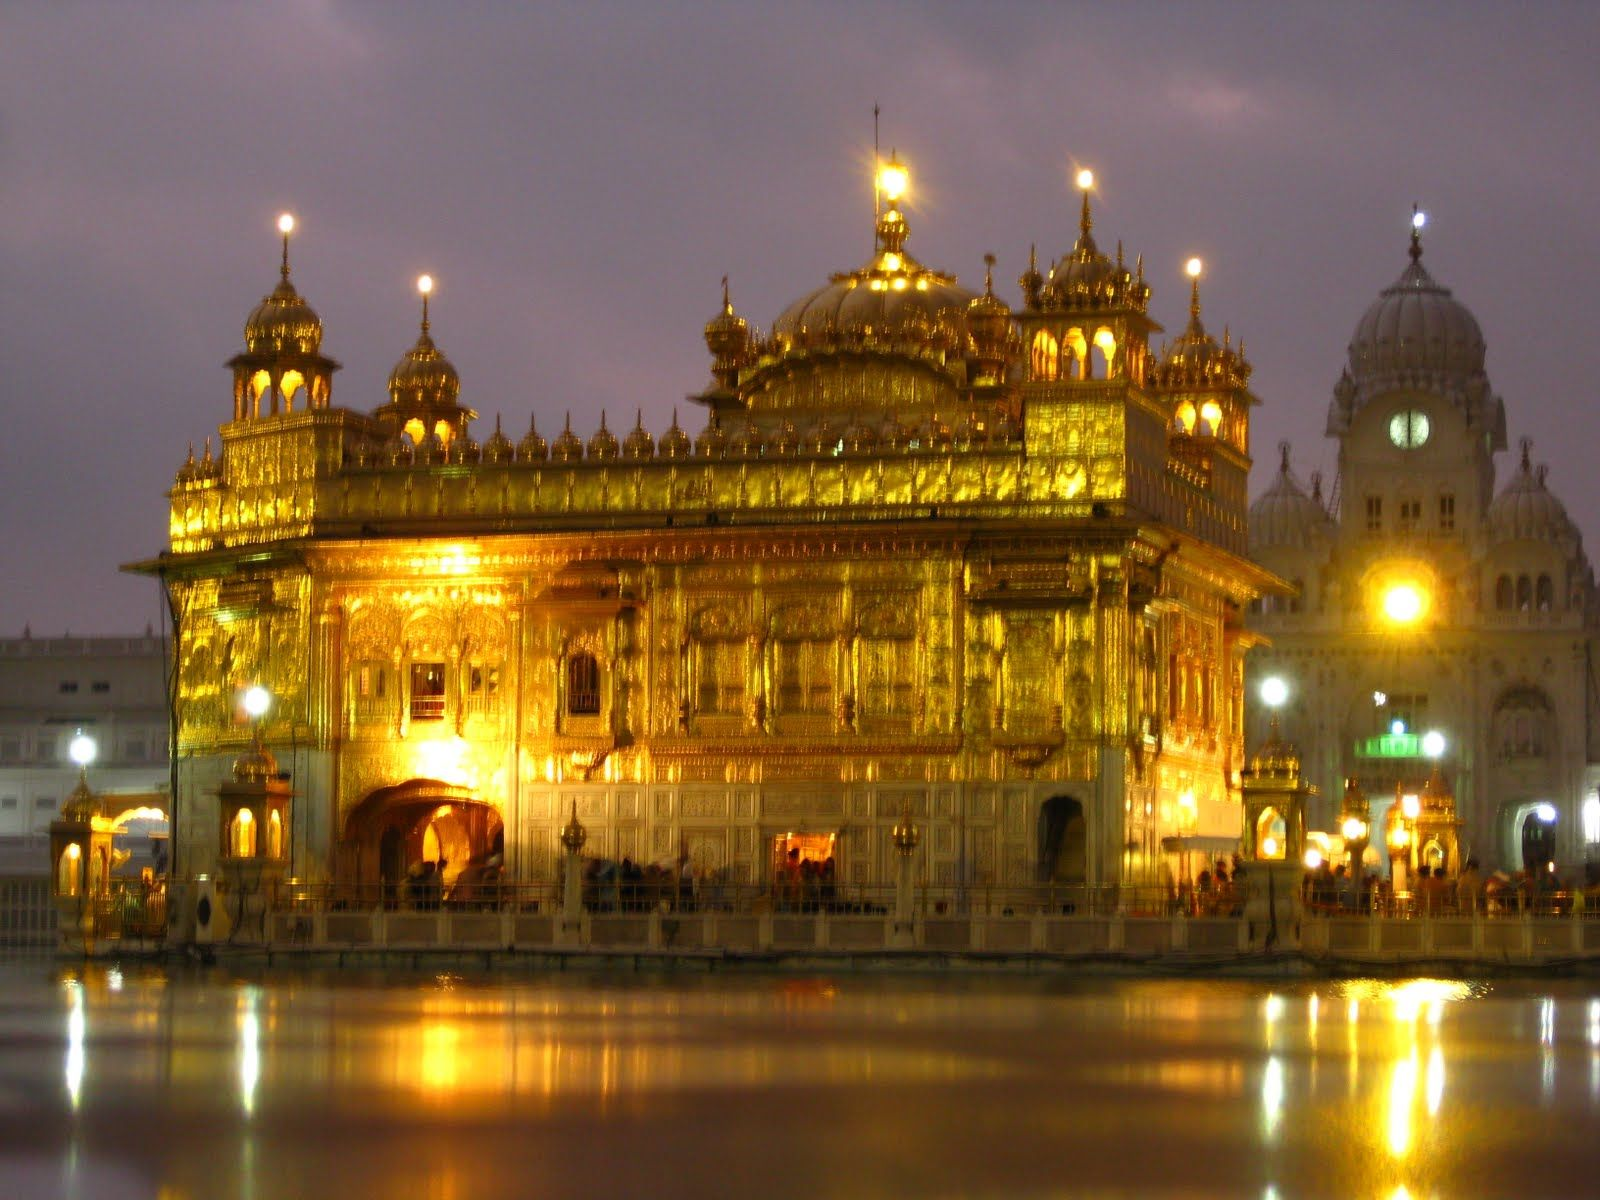 enjoy the beauty of the golden temple amritsar, punjab, india